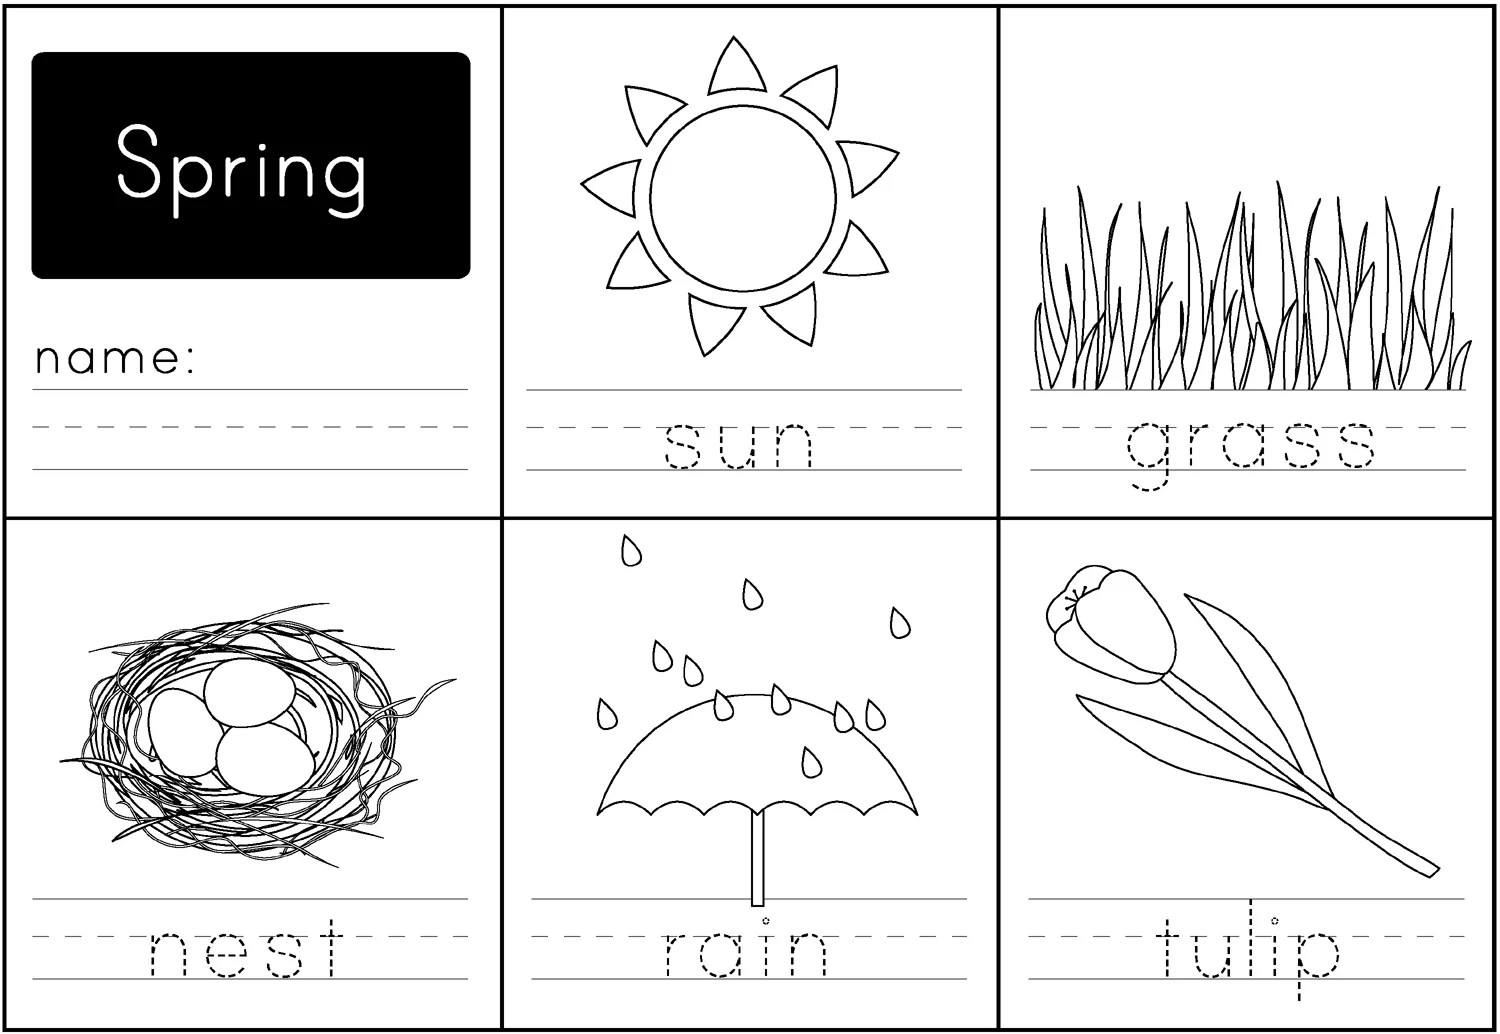 Spring Handwriting Printable